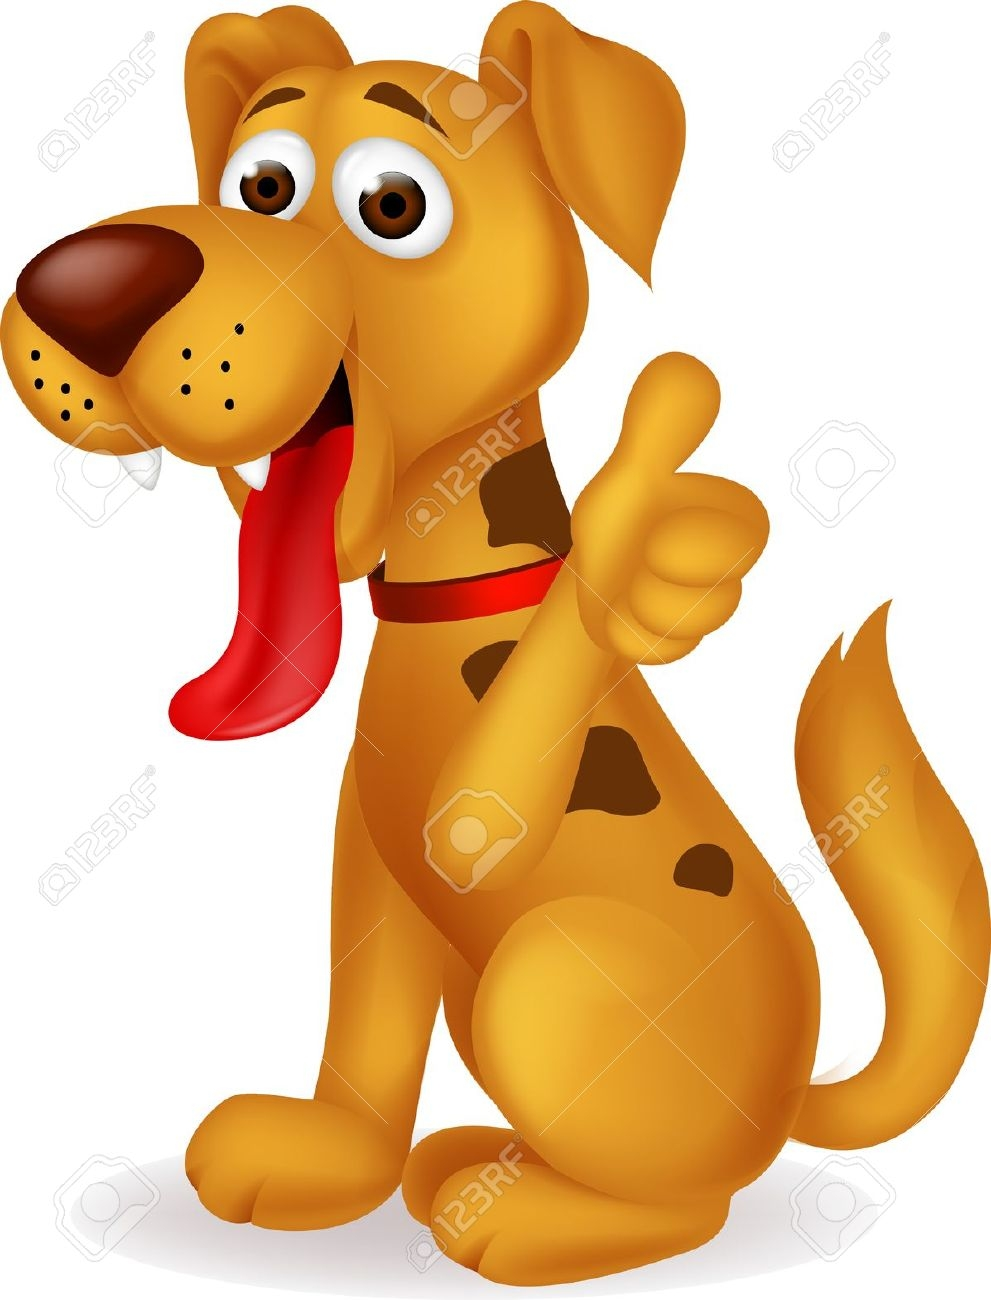 Thumbs up dog clipart clipart royalty free stock Ehats up dog clipart - ClipartFest clipart royalty free stock